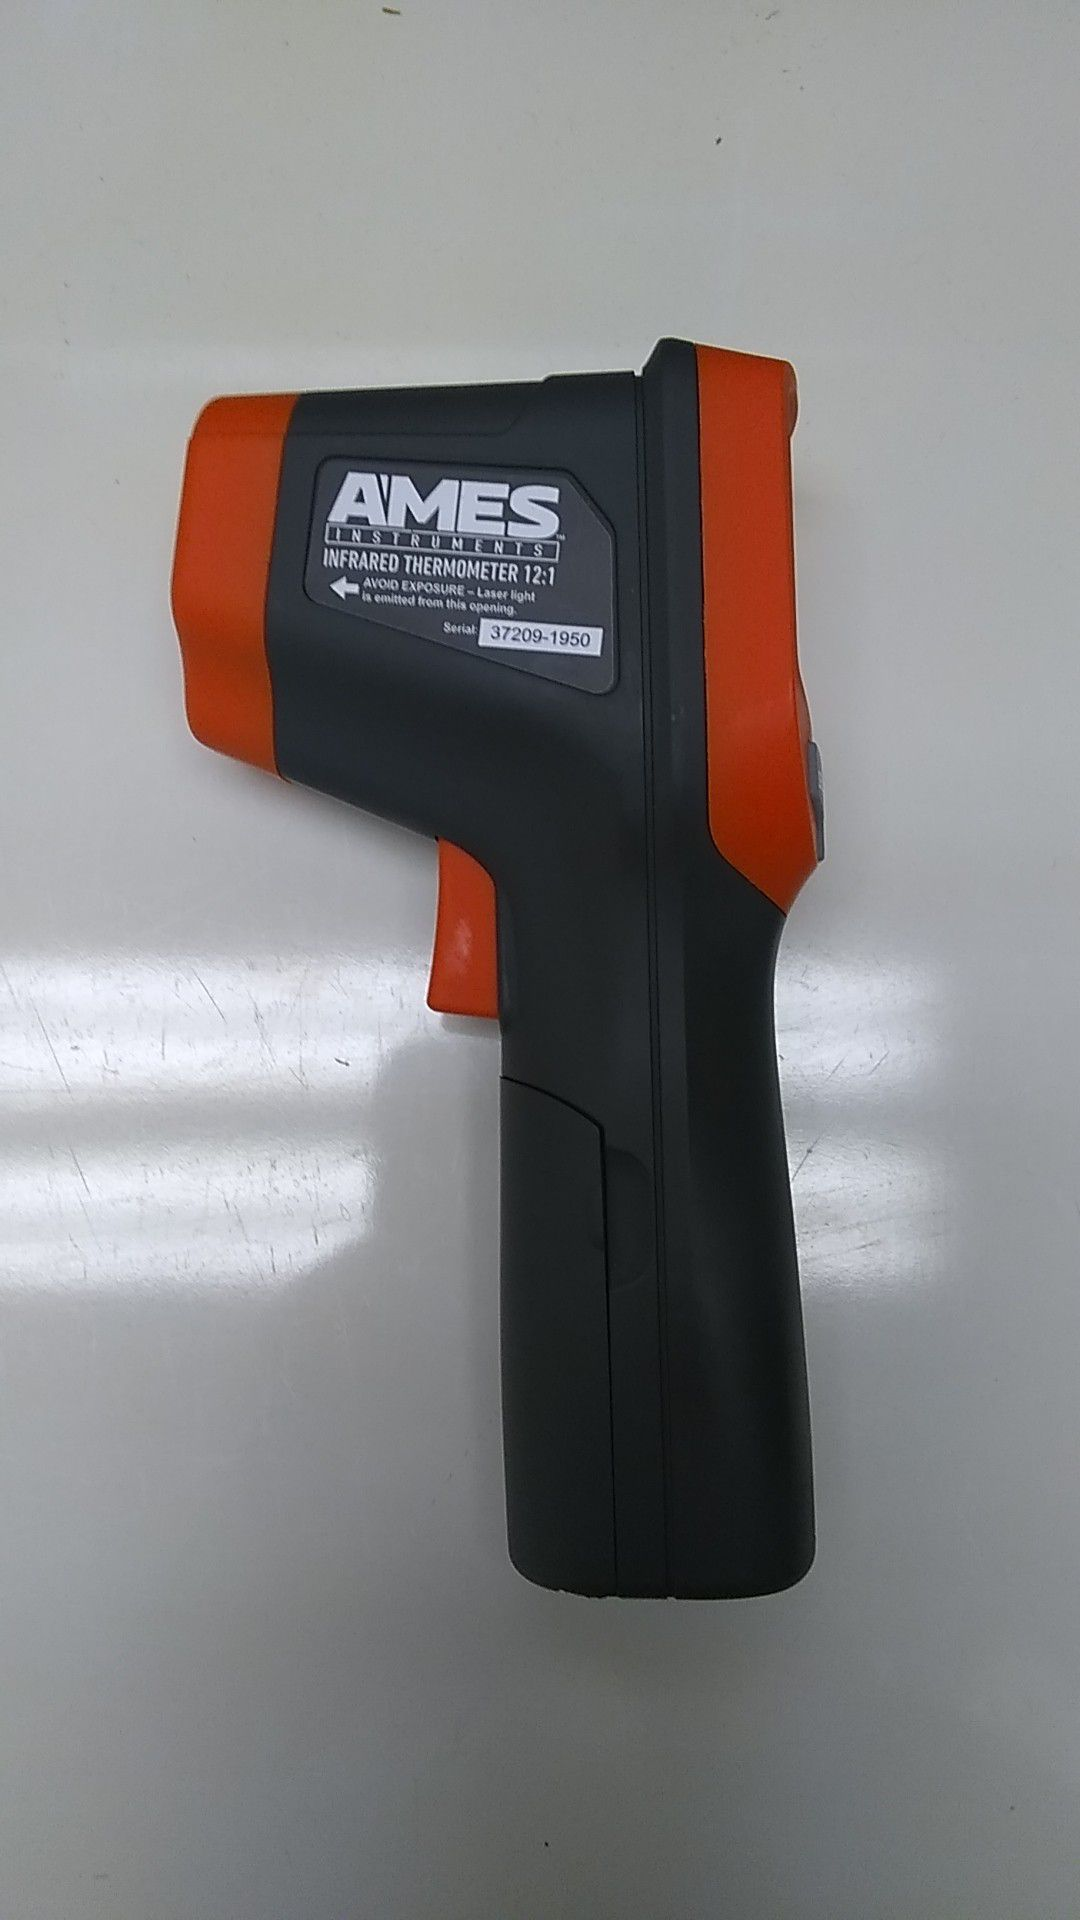 Ames Infrared Thermometer